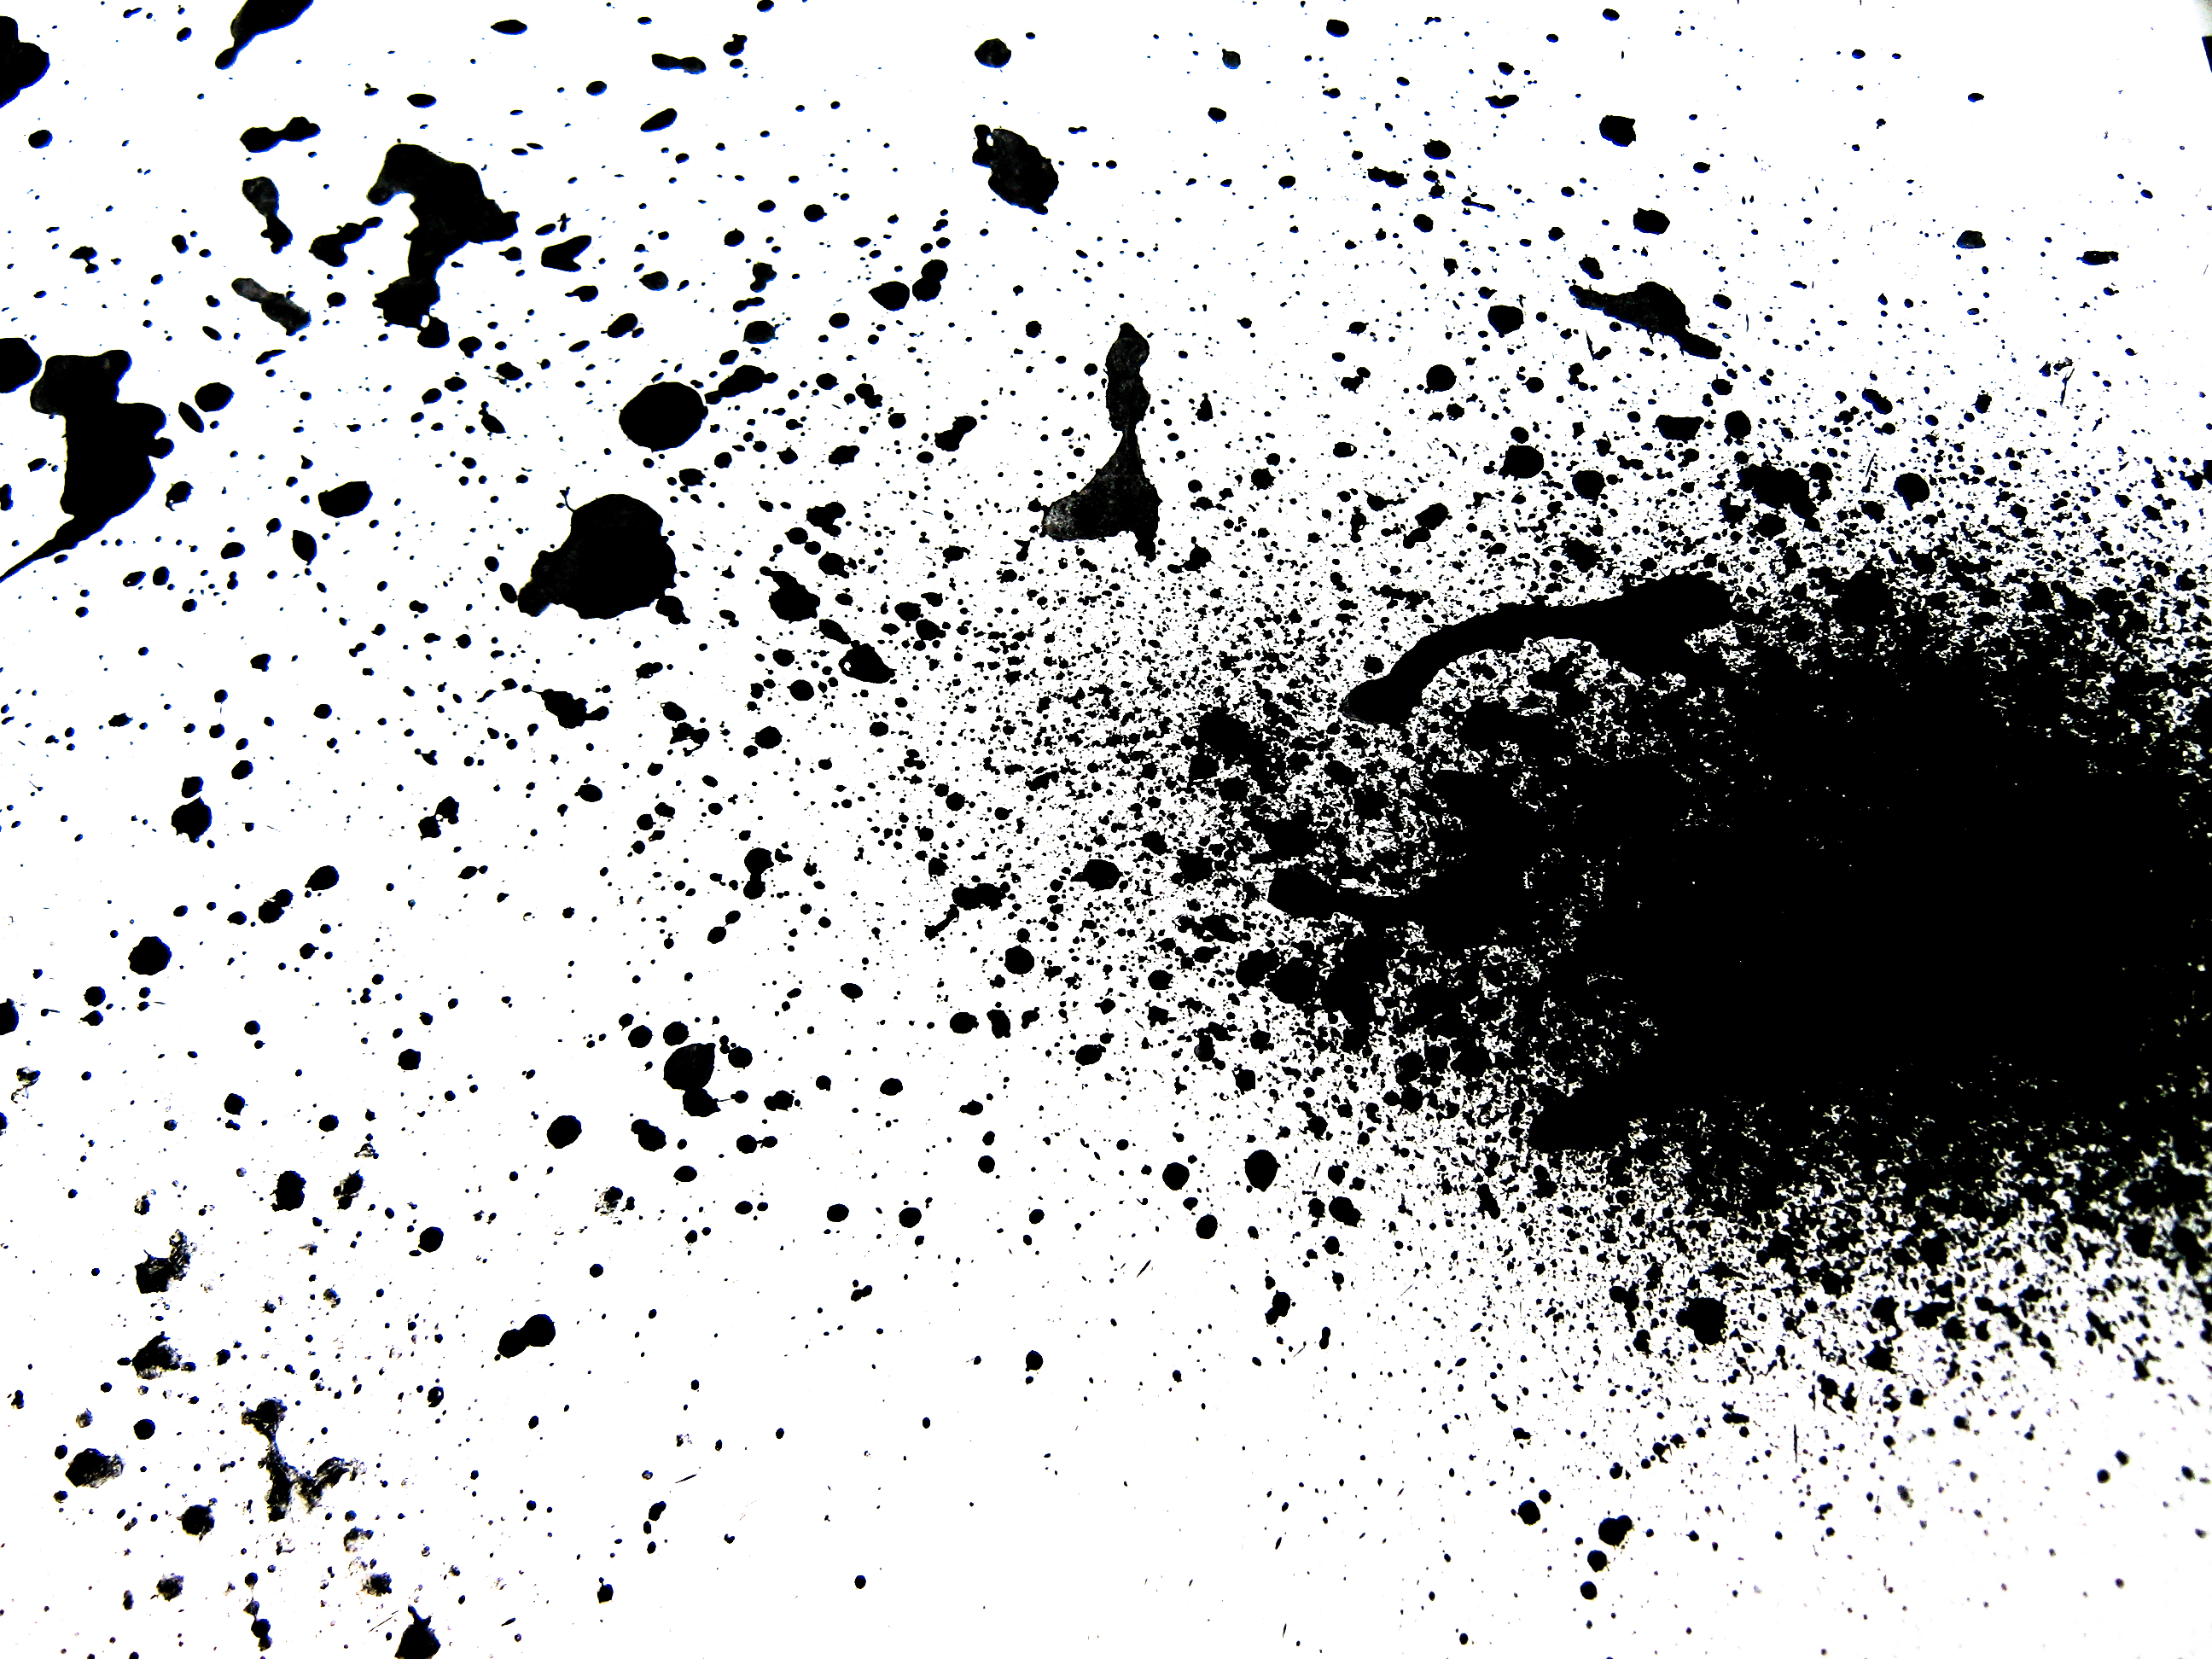 Black ink splatter, Paint, Splash, Spatter, Messy, HQ Photo